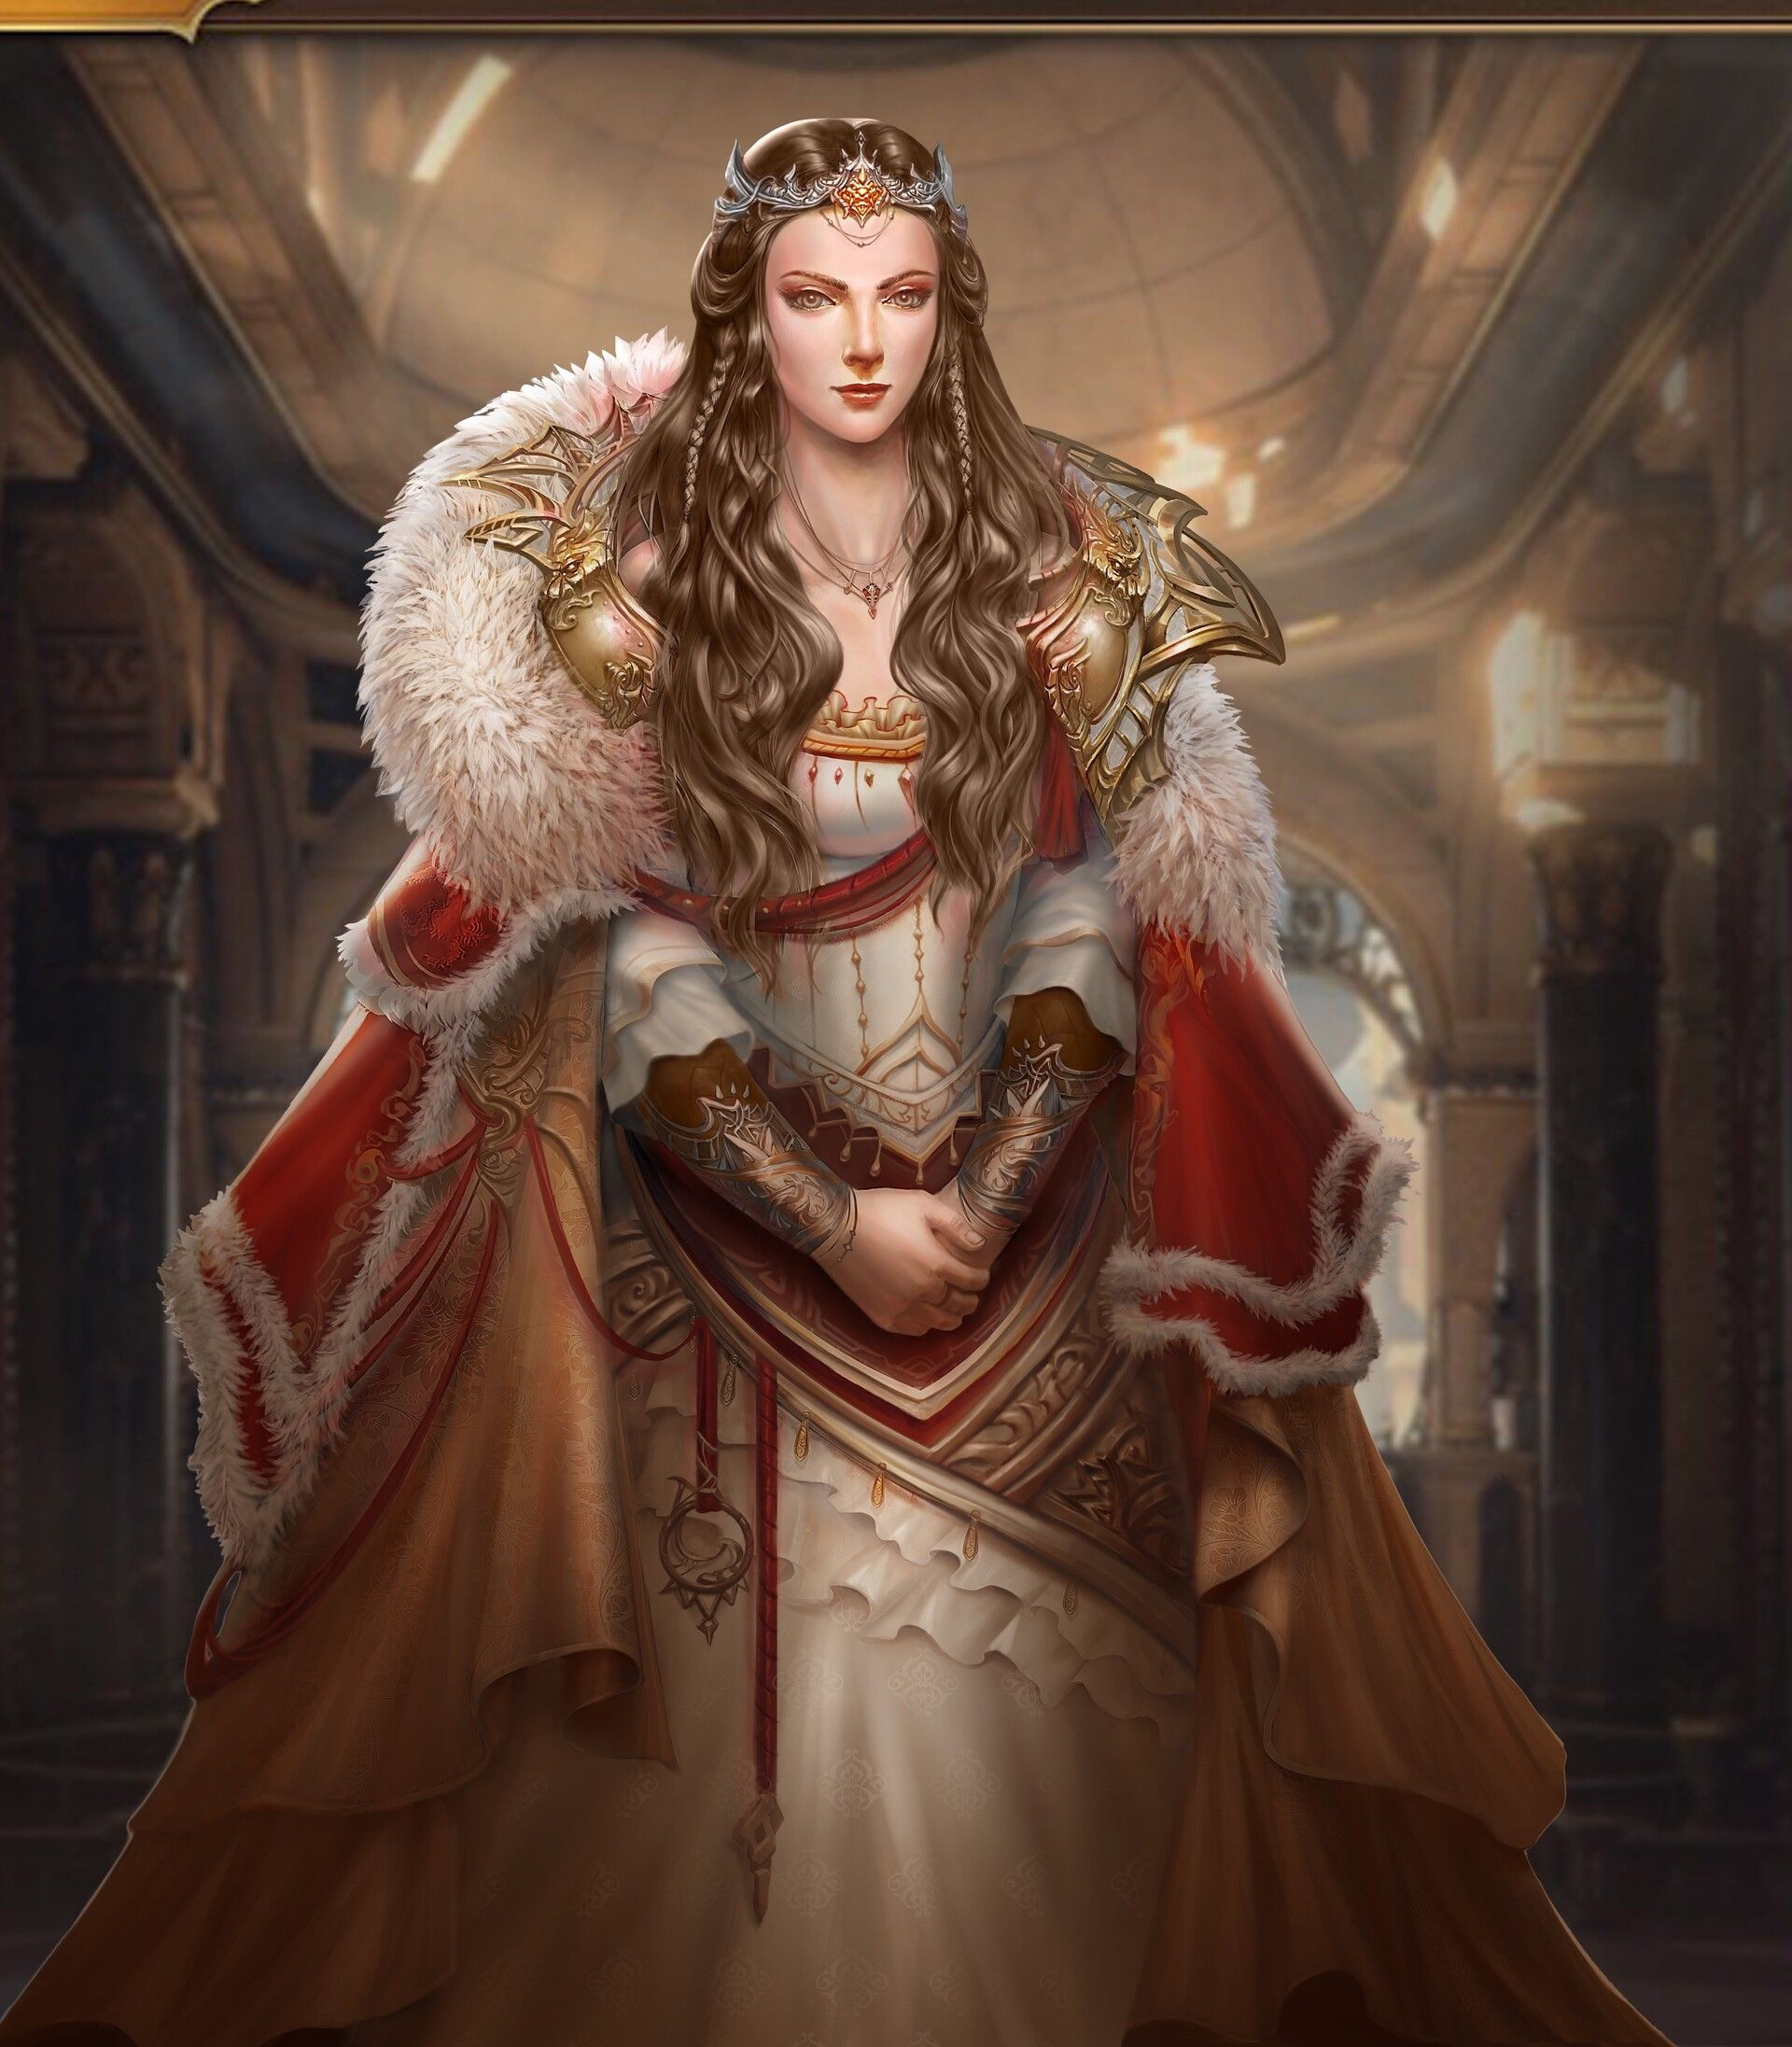 Medieval Fantasy Princess Art